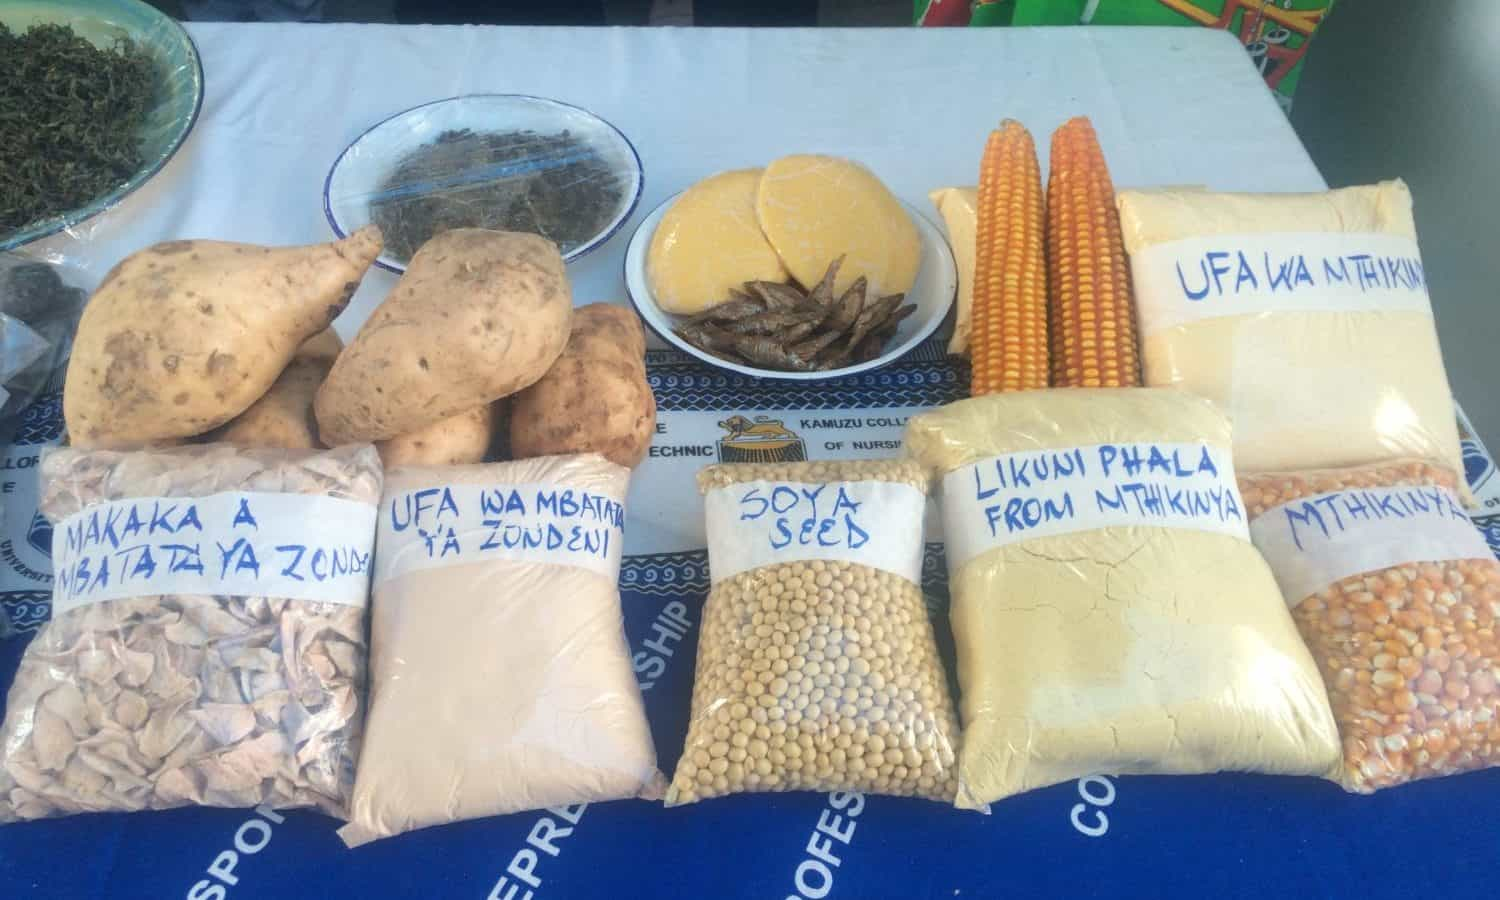 In response to the recent op-ed by Timothy Wise: Did Monsanto Write Malawi's Seed Policy? Supply K. Chisi, Business Officer at the Seed Trade Association of Malawi responded to Food Tank.